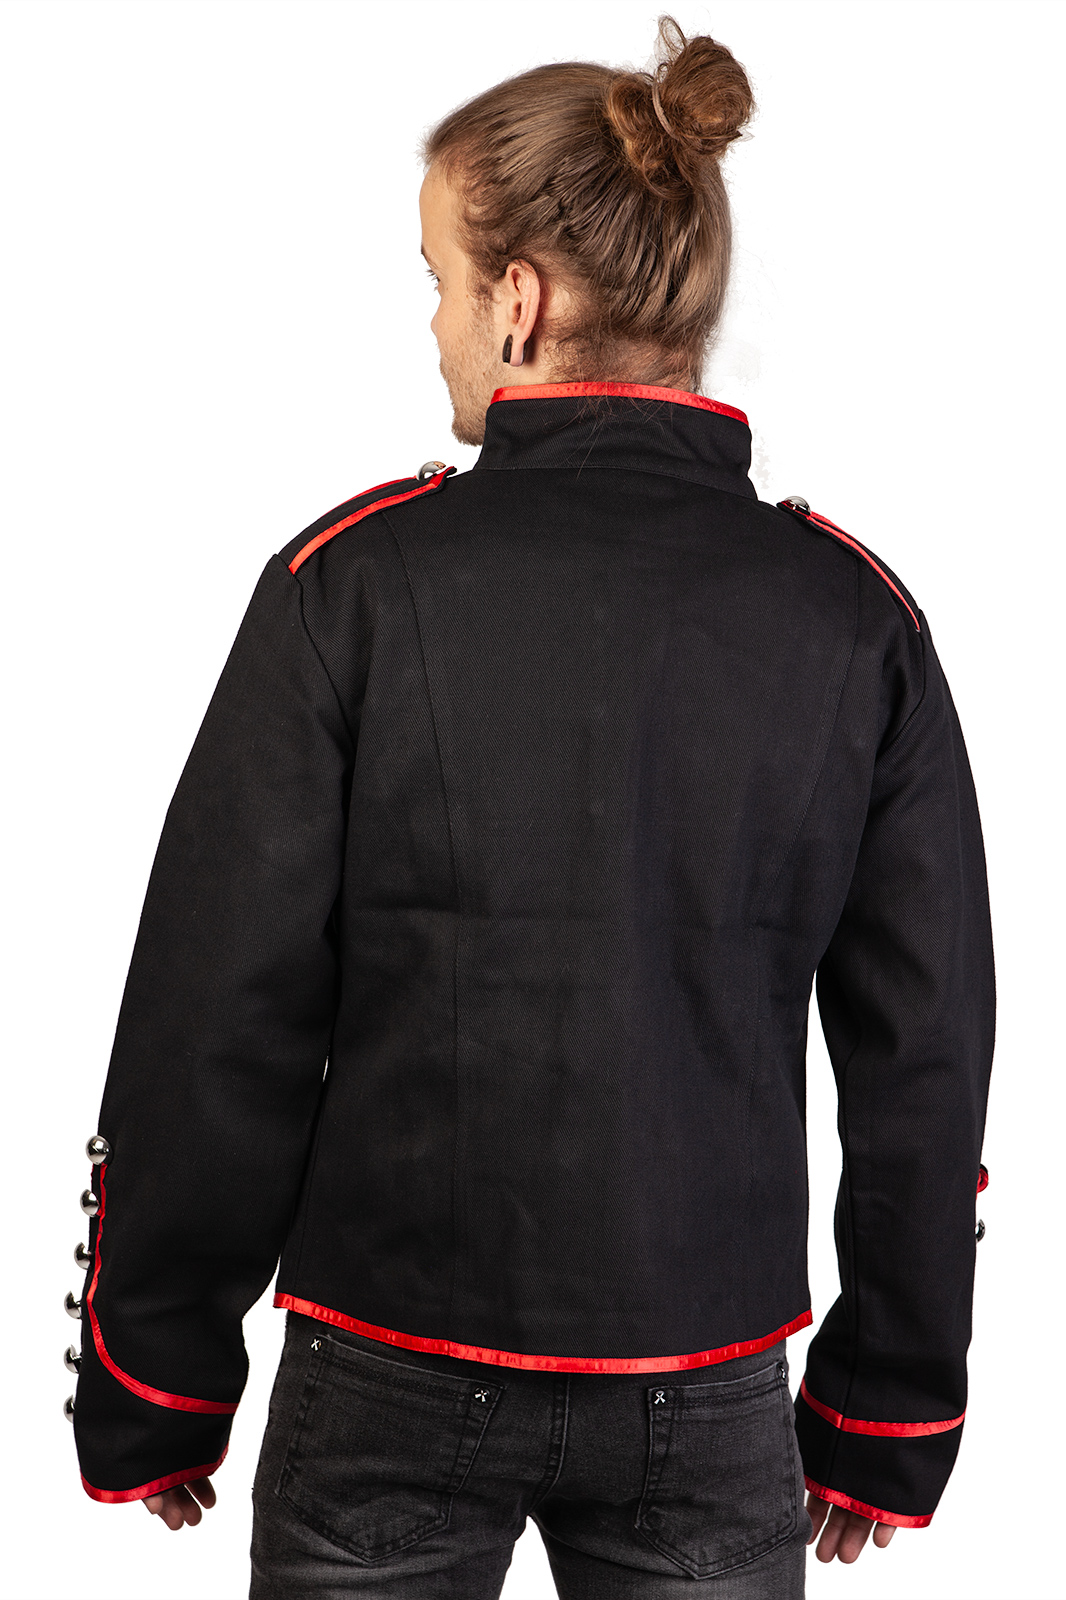 Admiral Jacket Red Piping